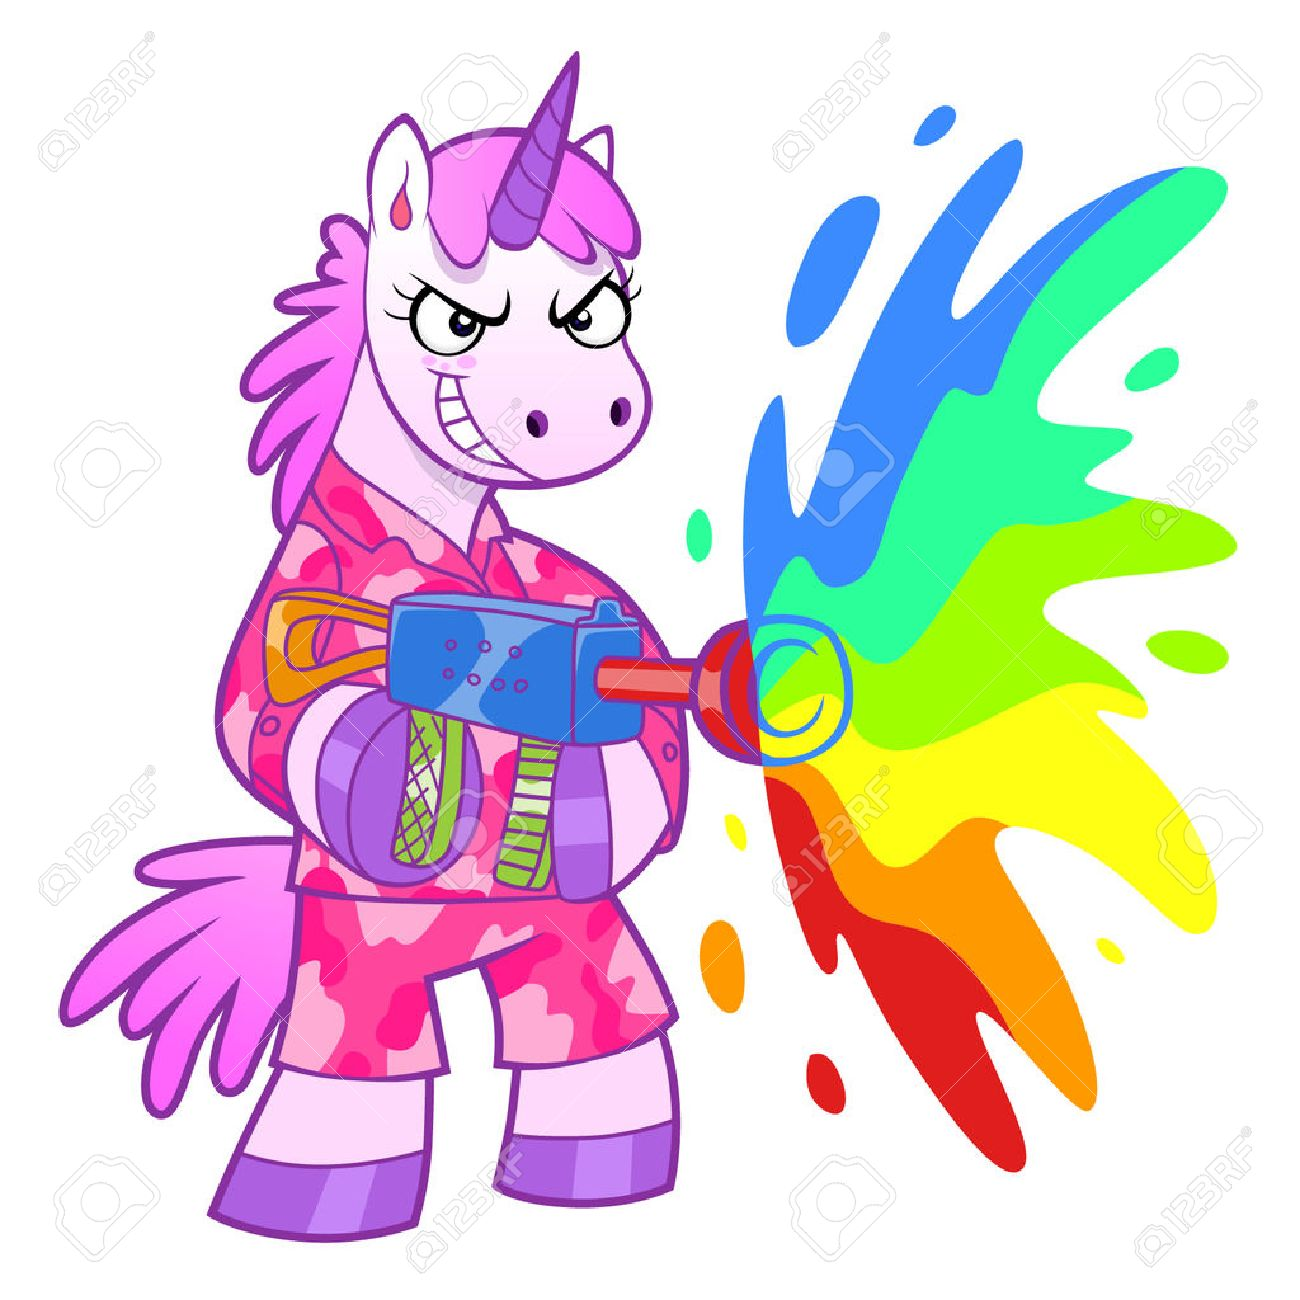 Unicorn soldier shooting from a rainbow cannon. - 39698753